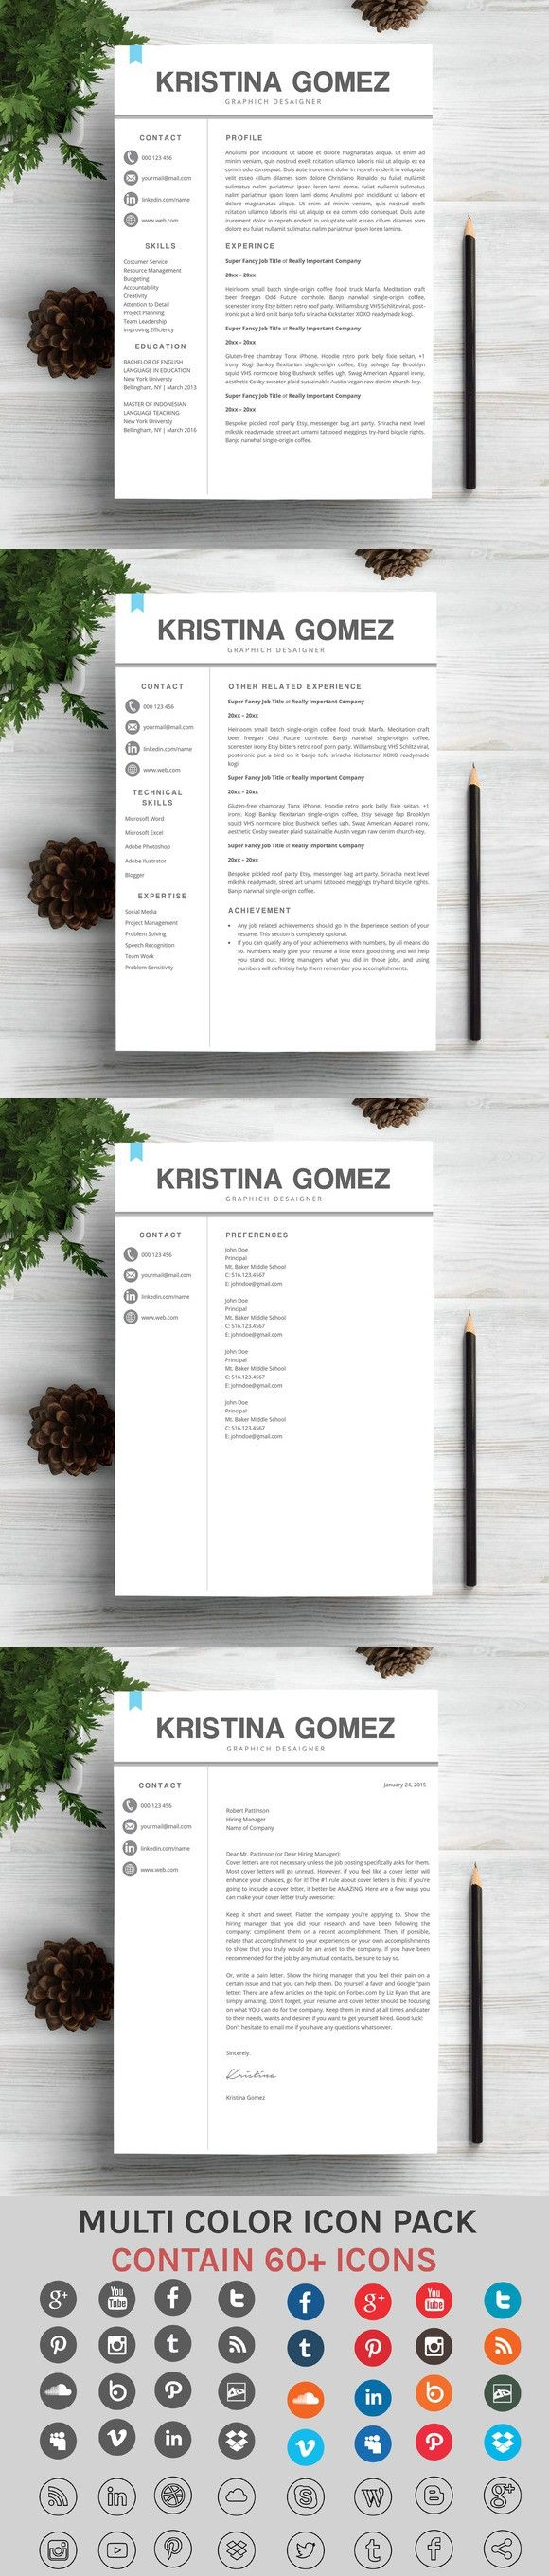 Creative and Modern Resume Modern ResumeProfessional Resume